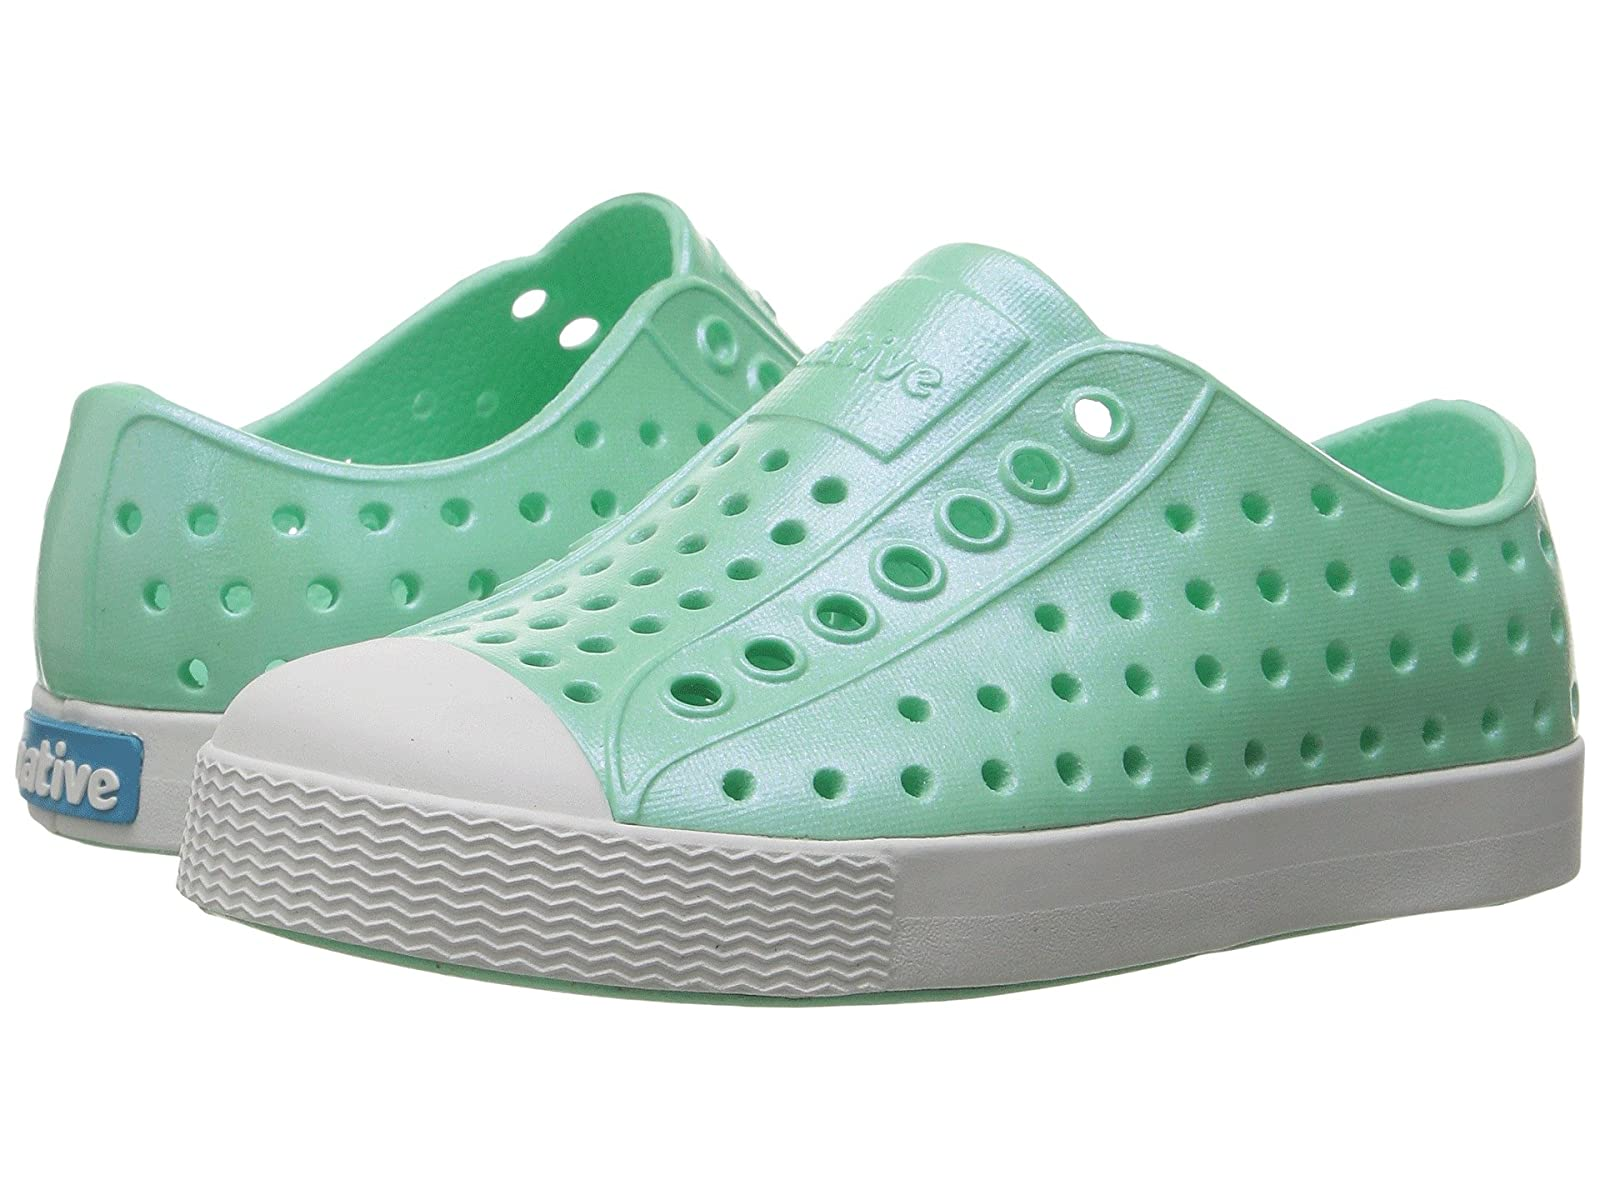 Native Kids Shoes Jefferson Iridescent (Toddler/Little Kid)Atmospheric grades have affordable shoes